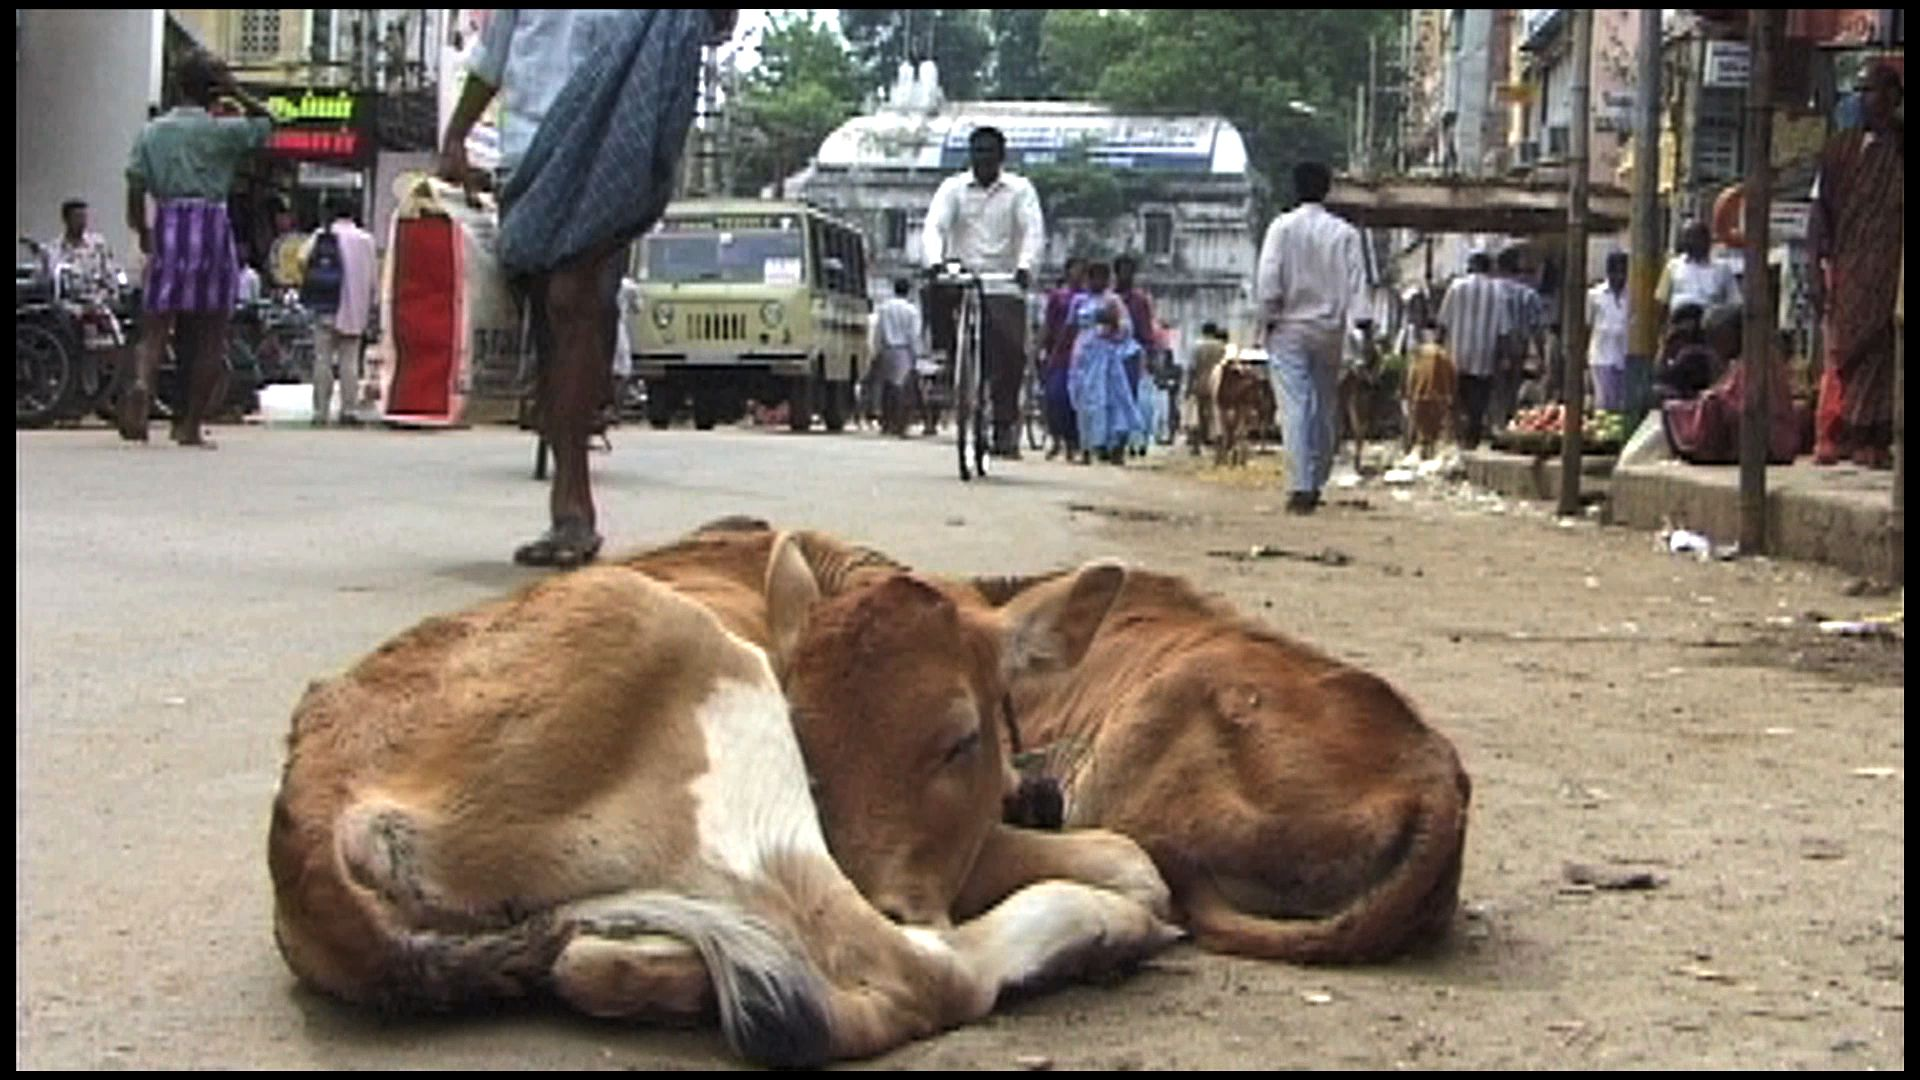 two calfs sleeping in the street